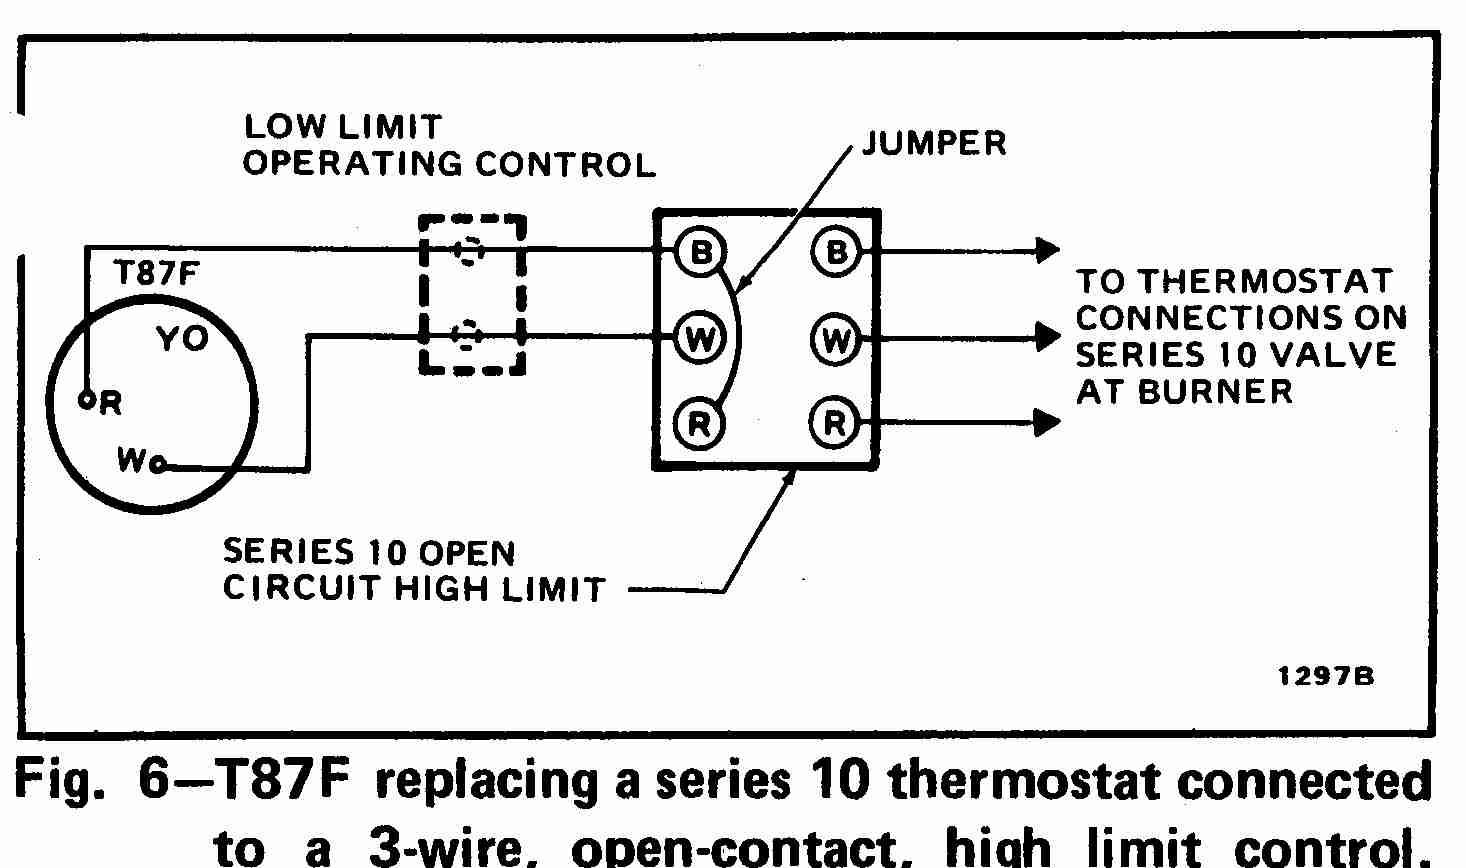 TT_T87F_0002_3WHL_DJF room thermostat wiring diagrams for hvac systems imit boiler thermostat wiring diagram at bakdesigns.co